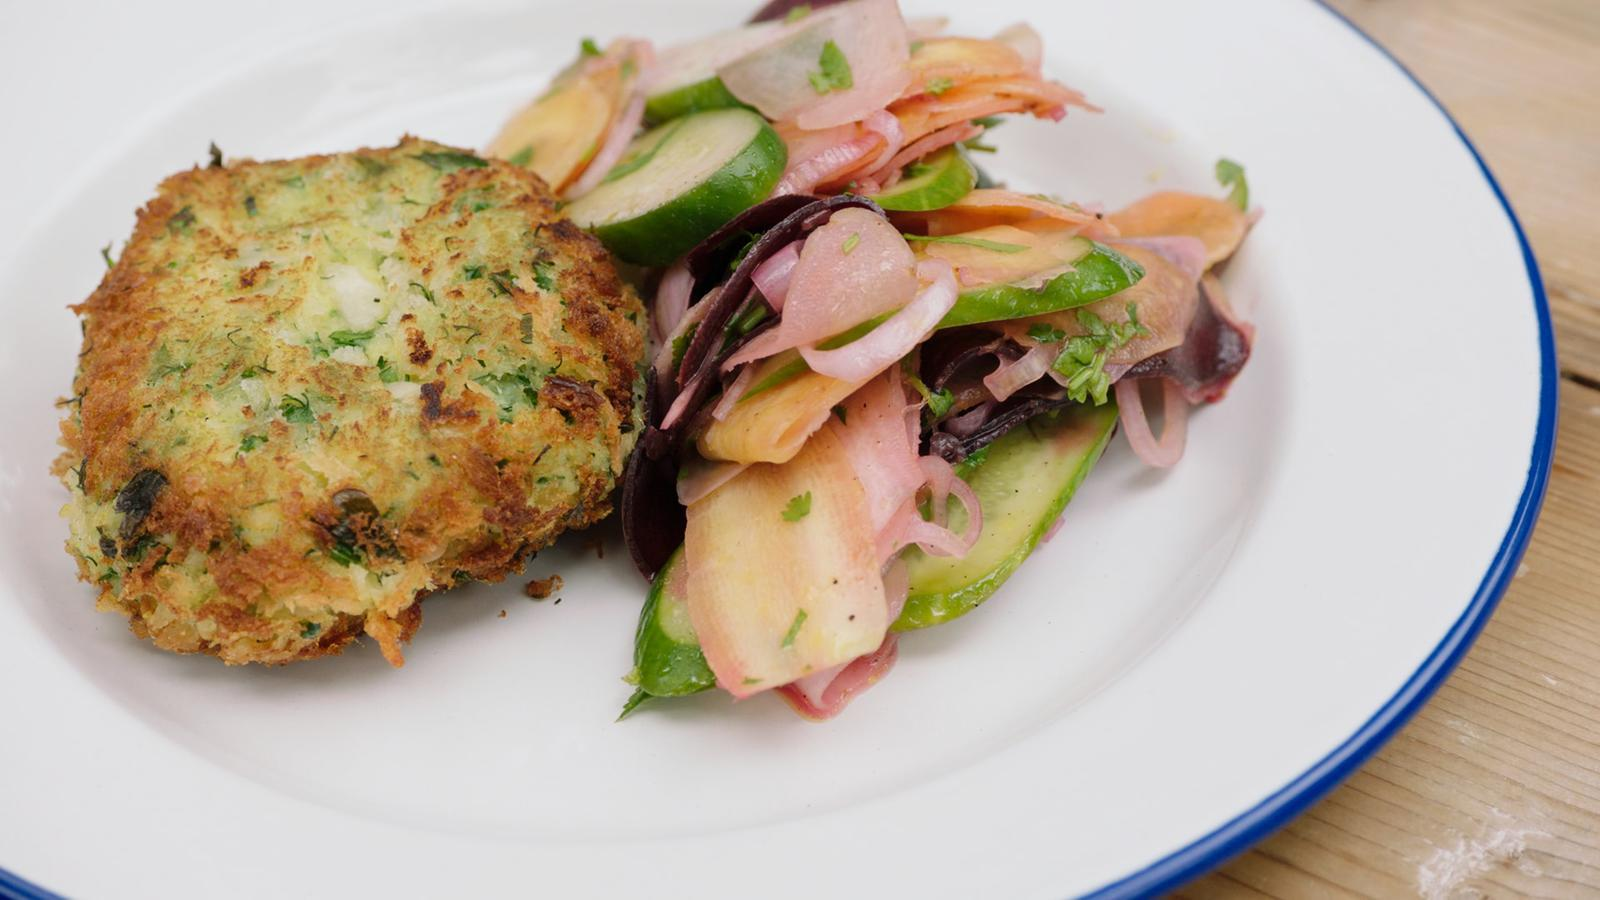 Fishcake met wortelsalade